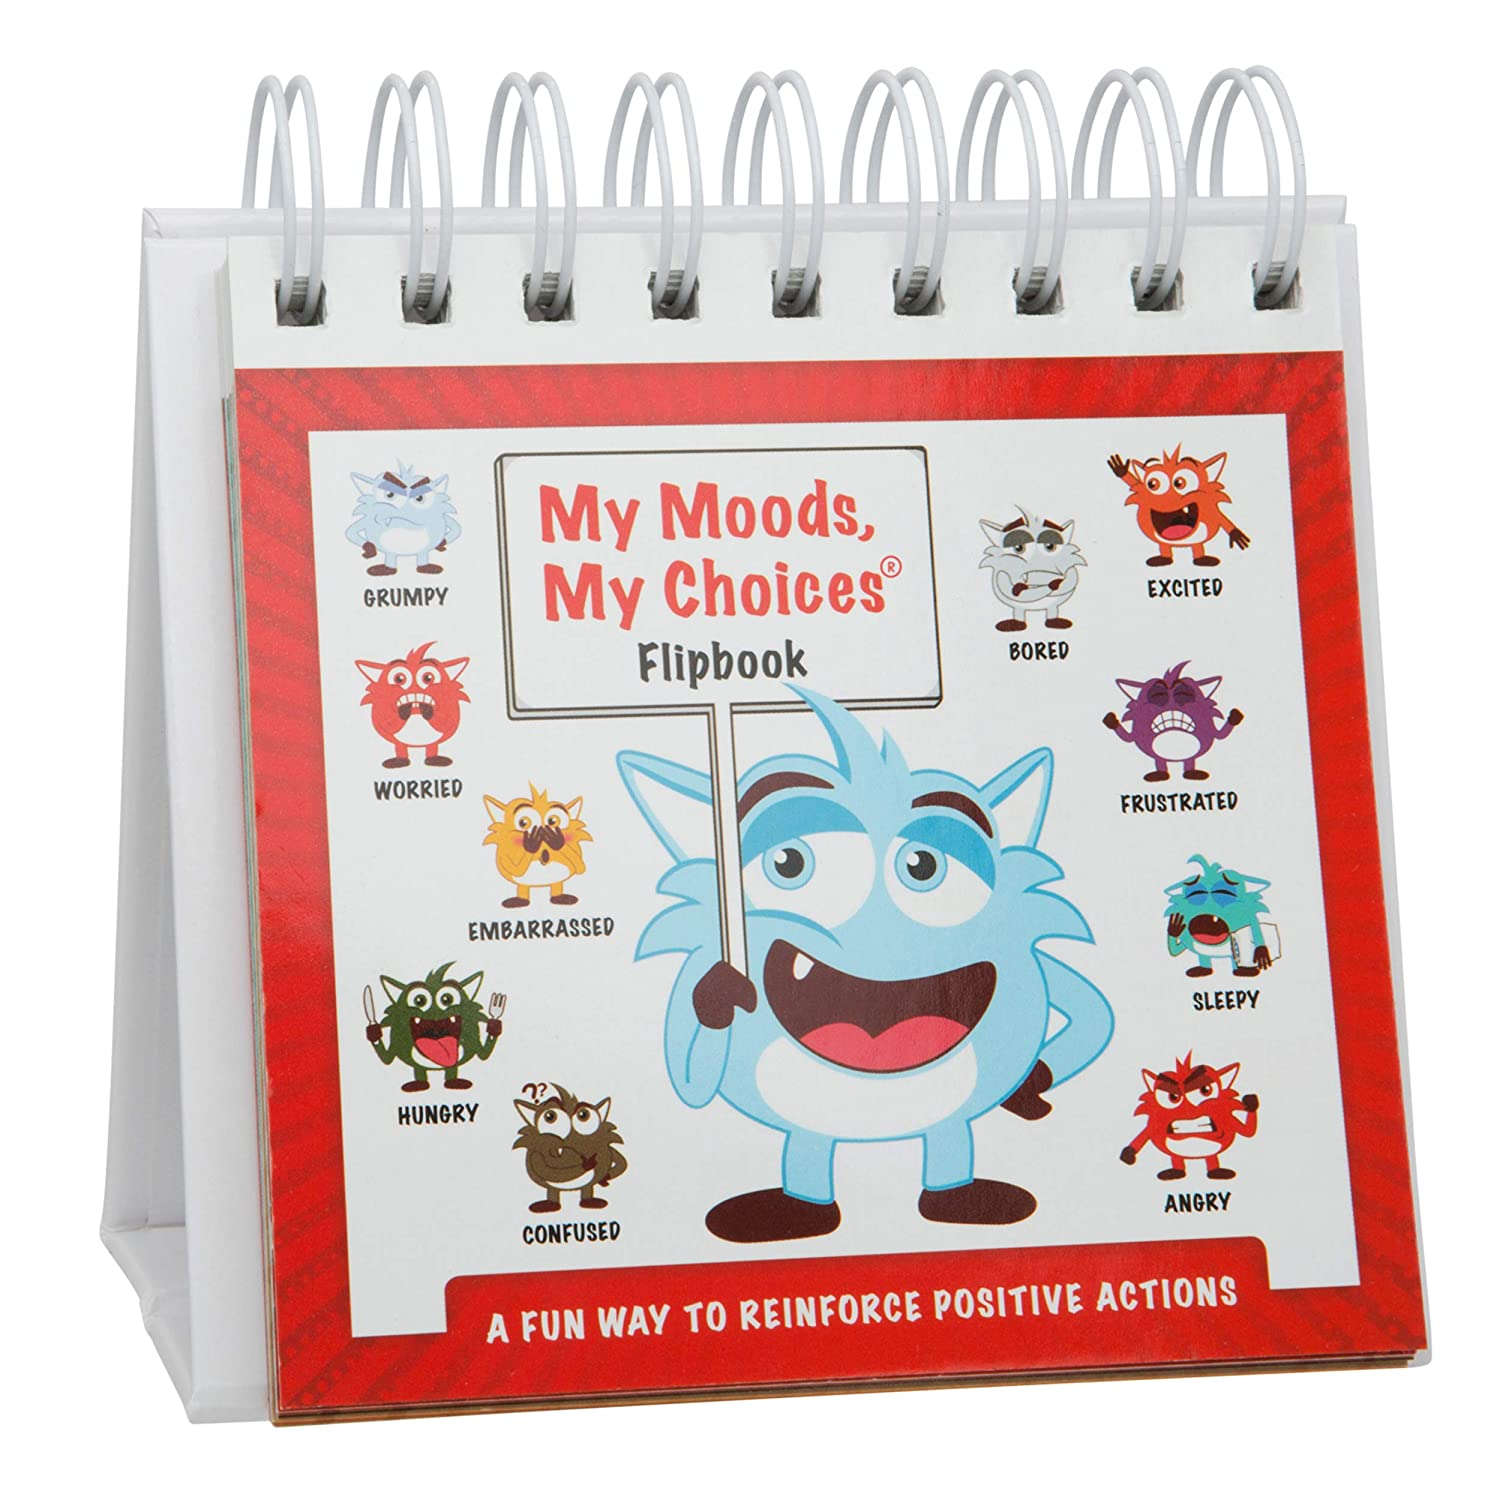 My Moods My Choices Flipbook for Kids; 20 Different Moods Emotions; Help Kids Identify Feelings and Make Positive Choices; Laminated Pages